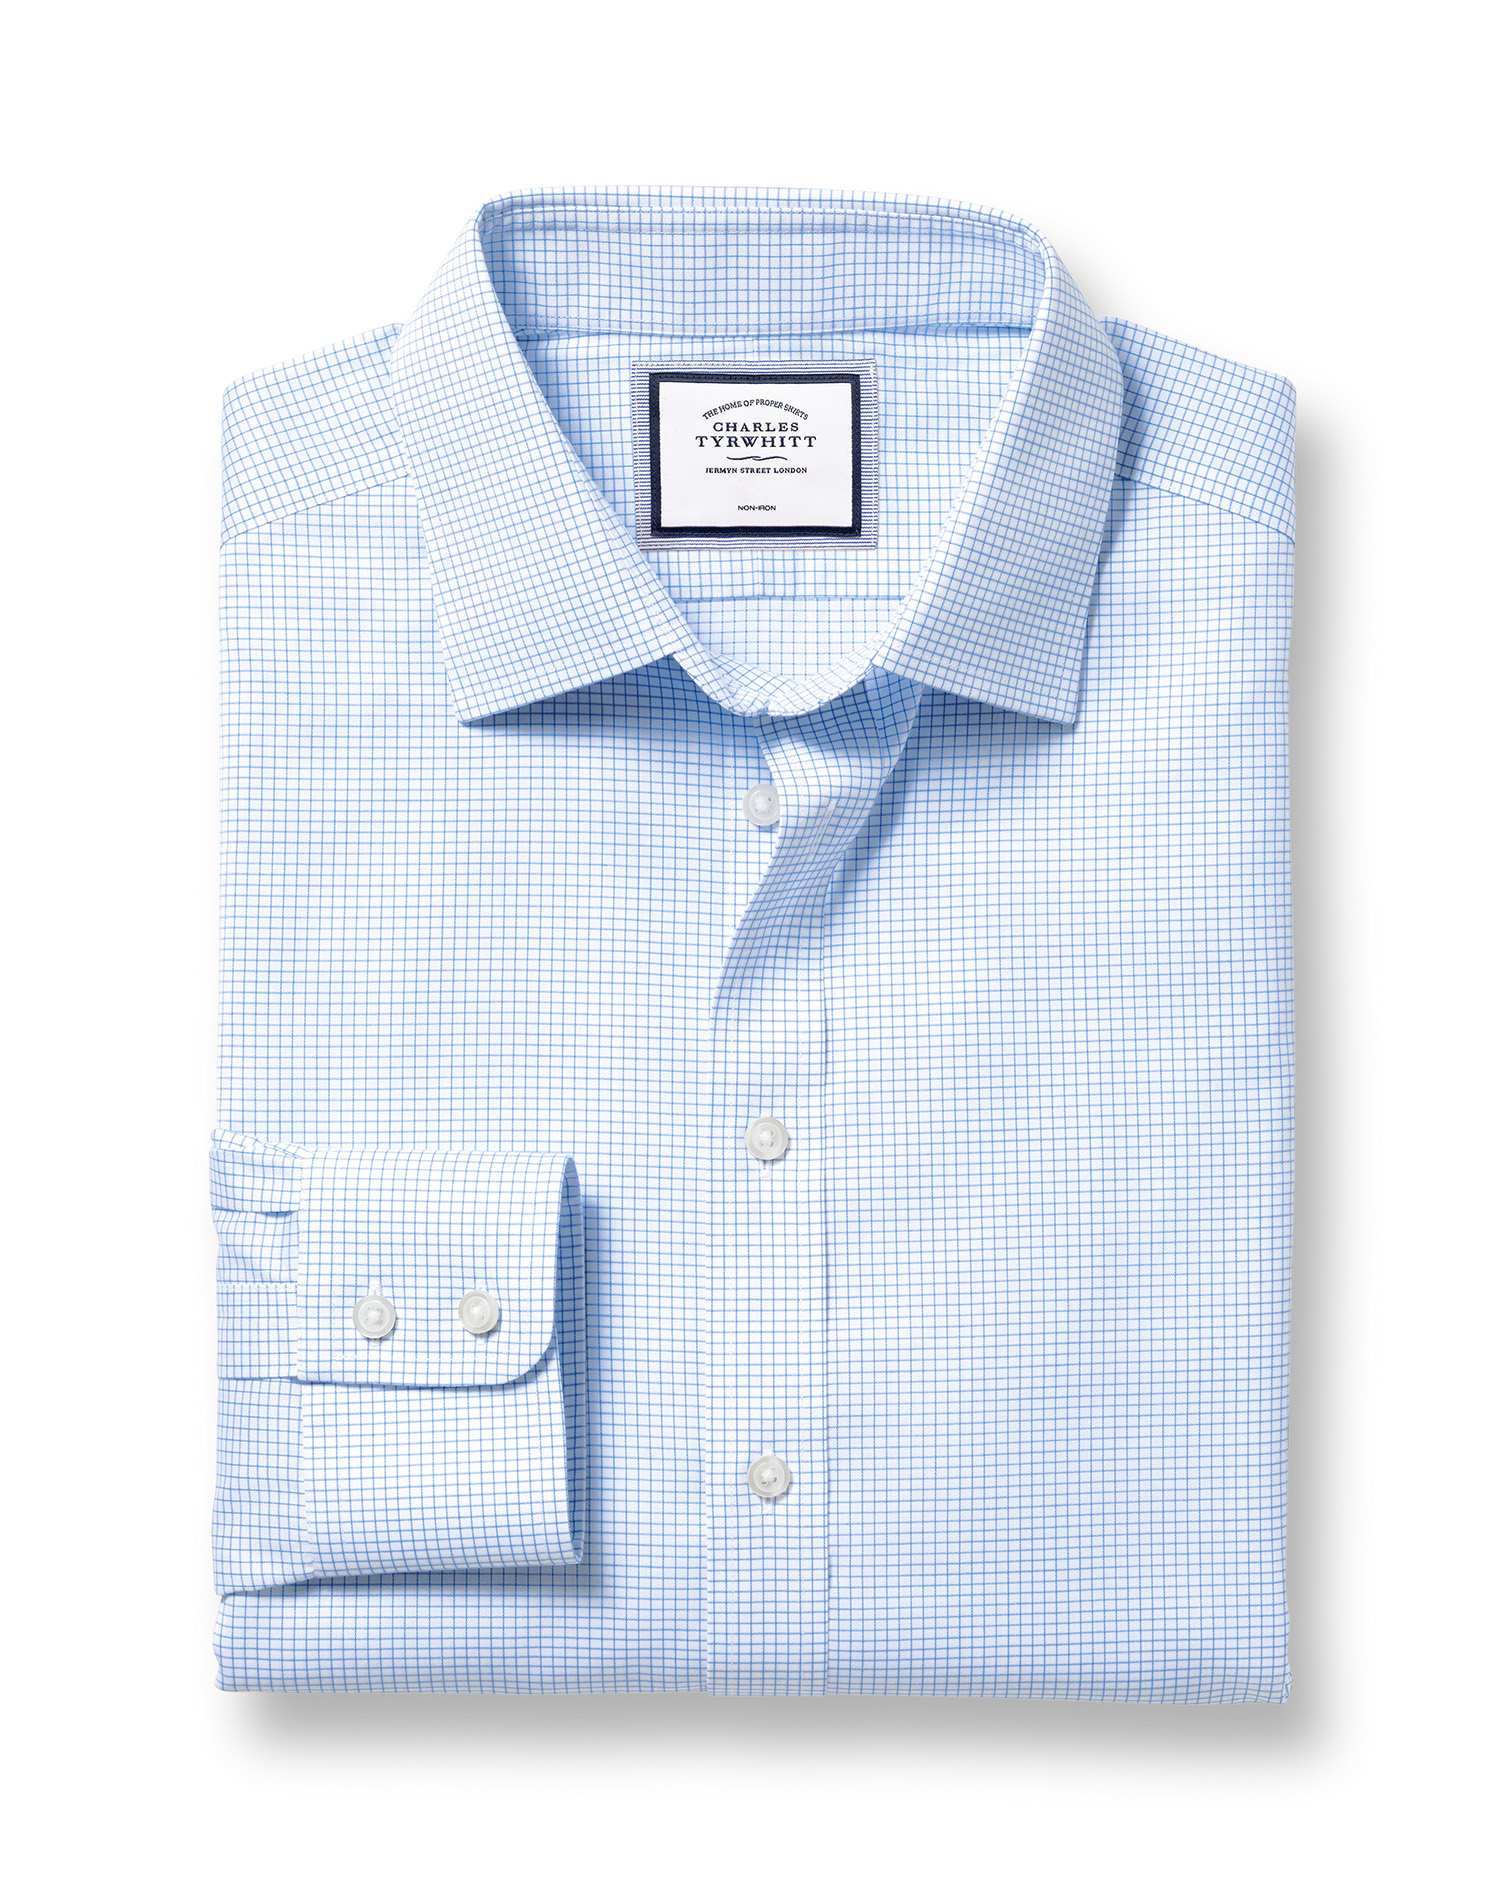 Extra Slim Fit Non-Iron Sky Blue Mini Grid Check Twill Cotton Formal Shirt Double Cuff Size 15/35 by